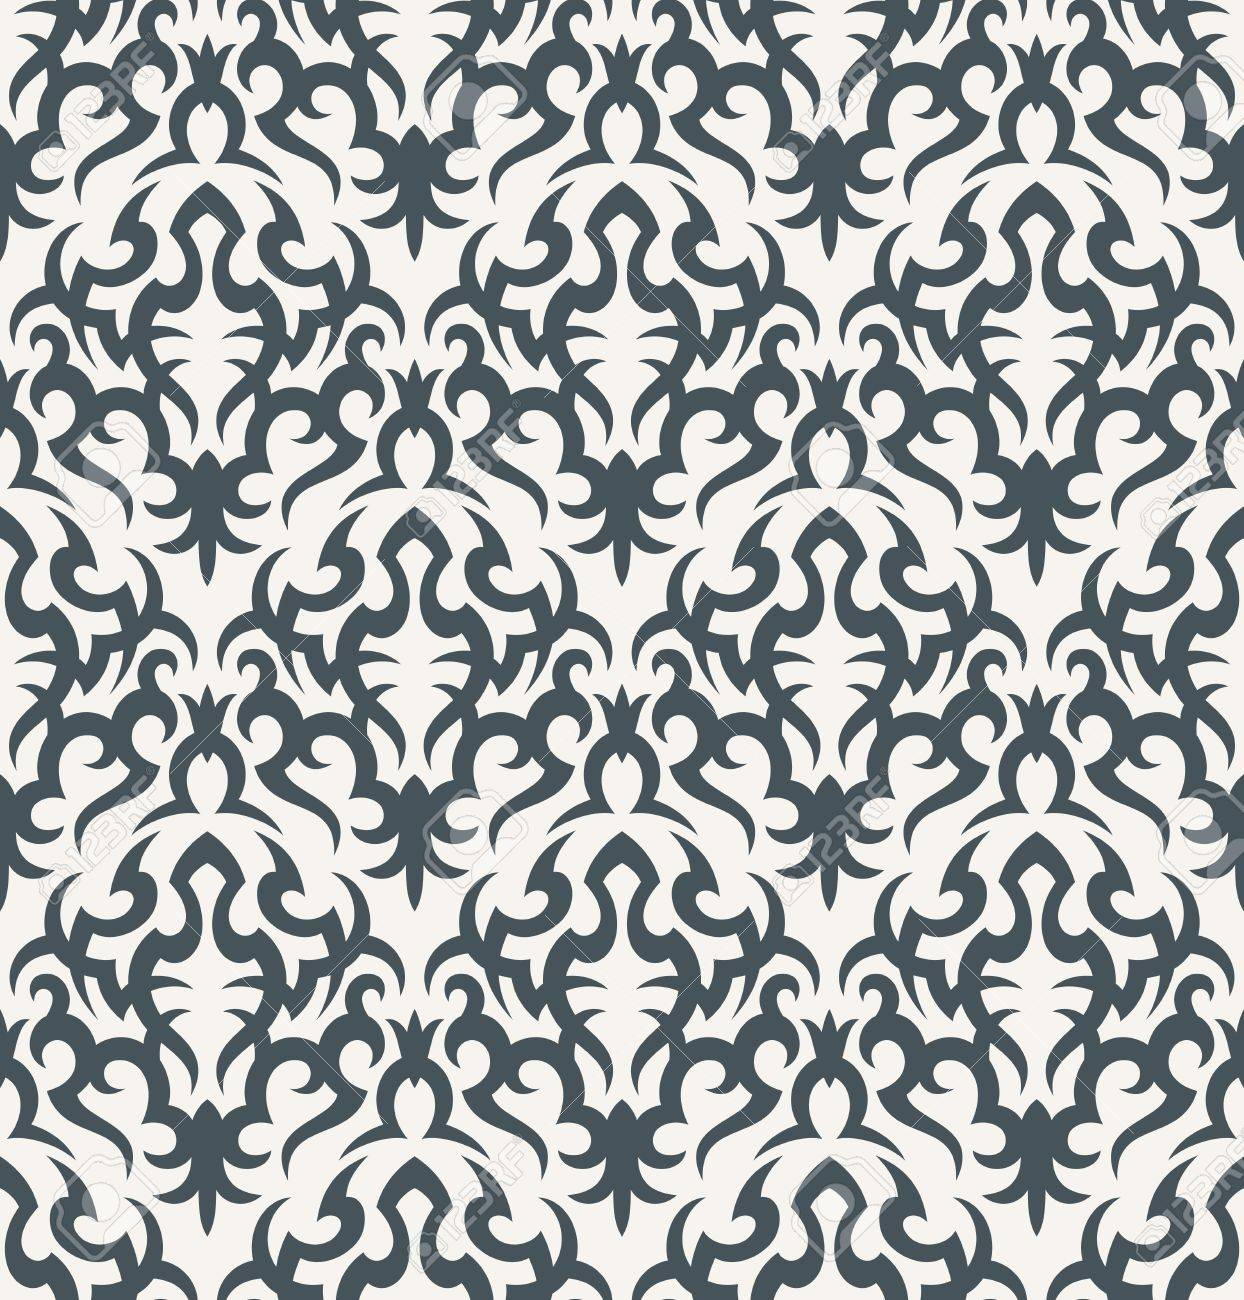 Seamless background from a floral ornament, Fashionable modern wallpaper or textile Stock Vector - 7230097